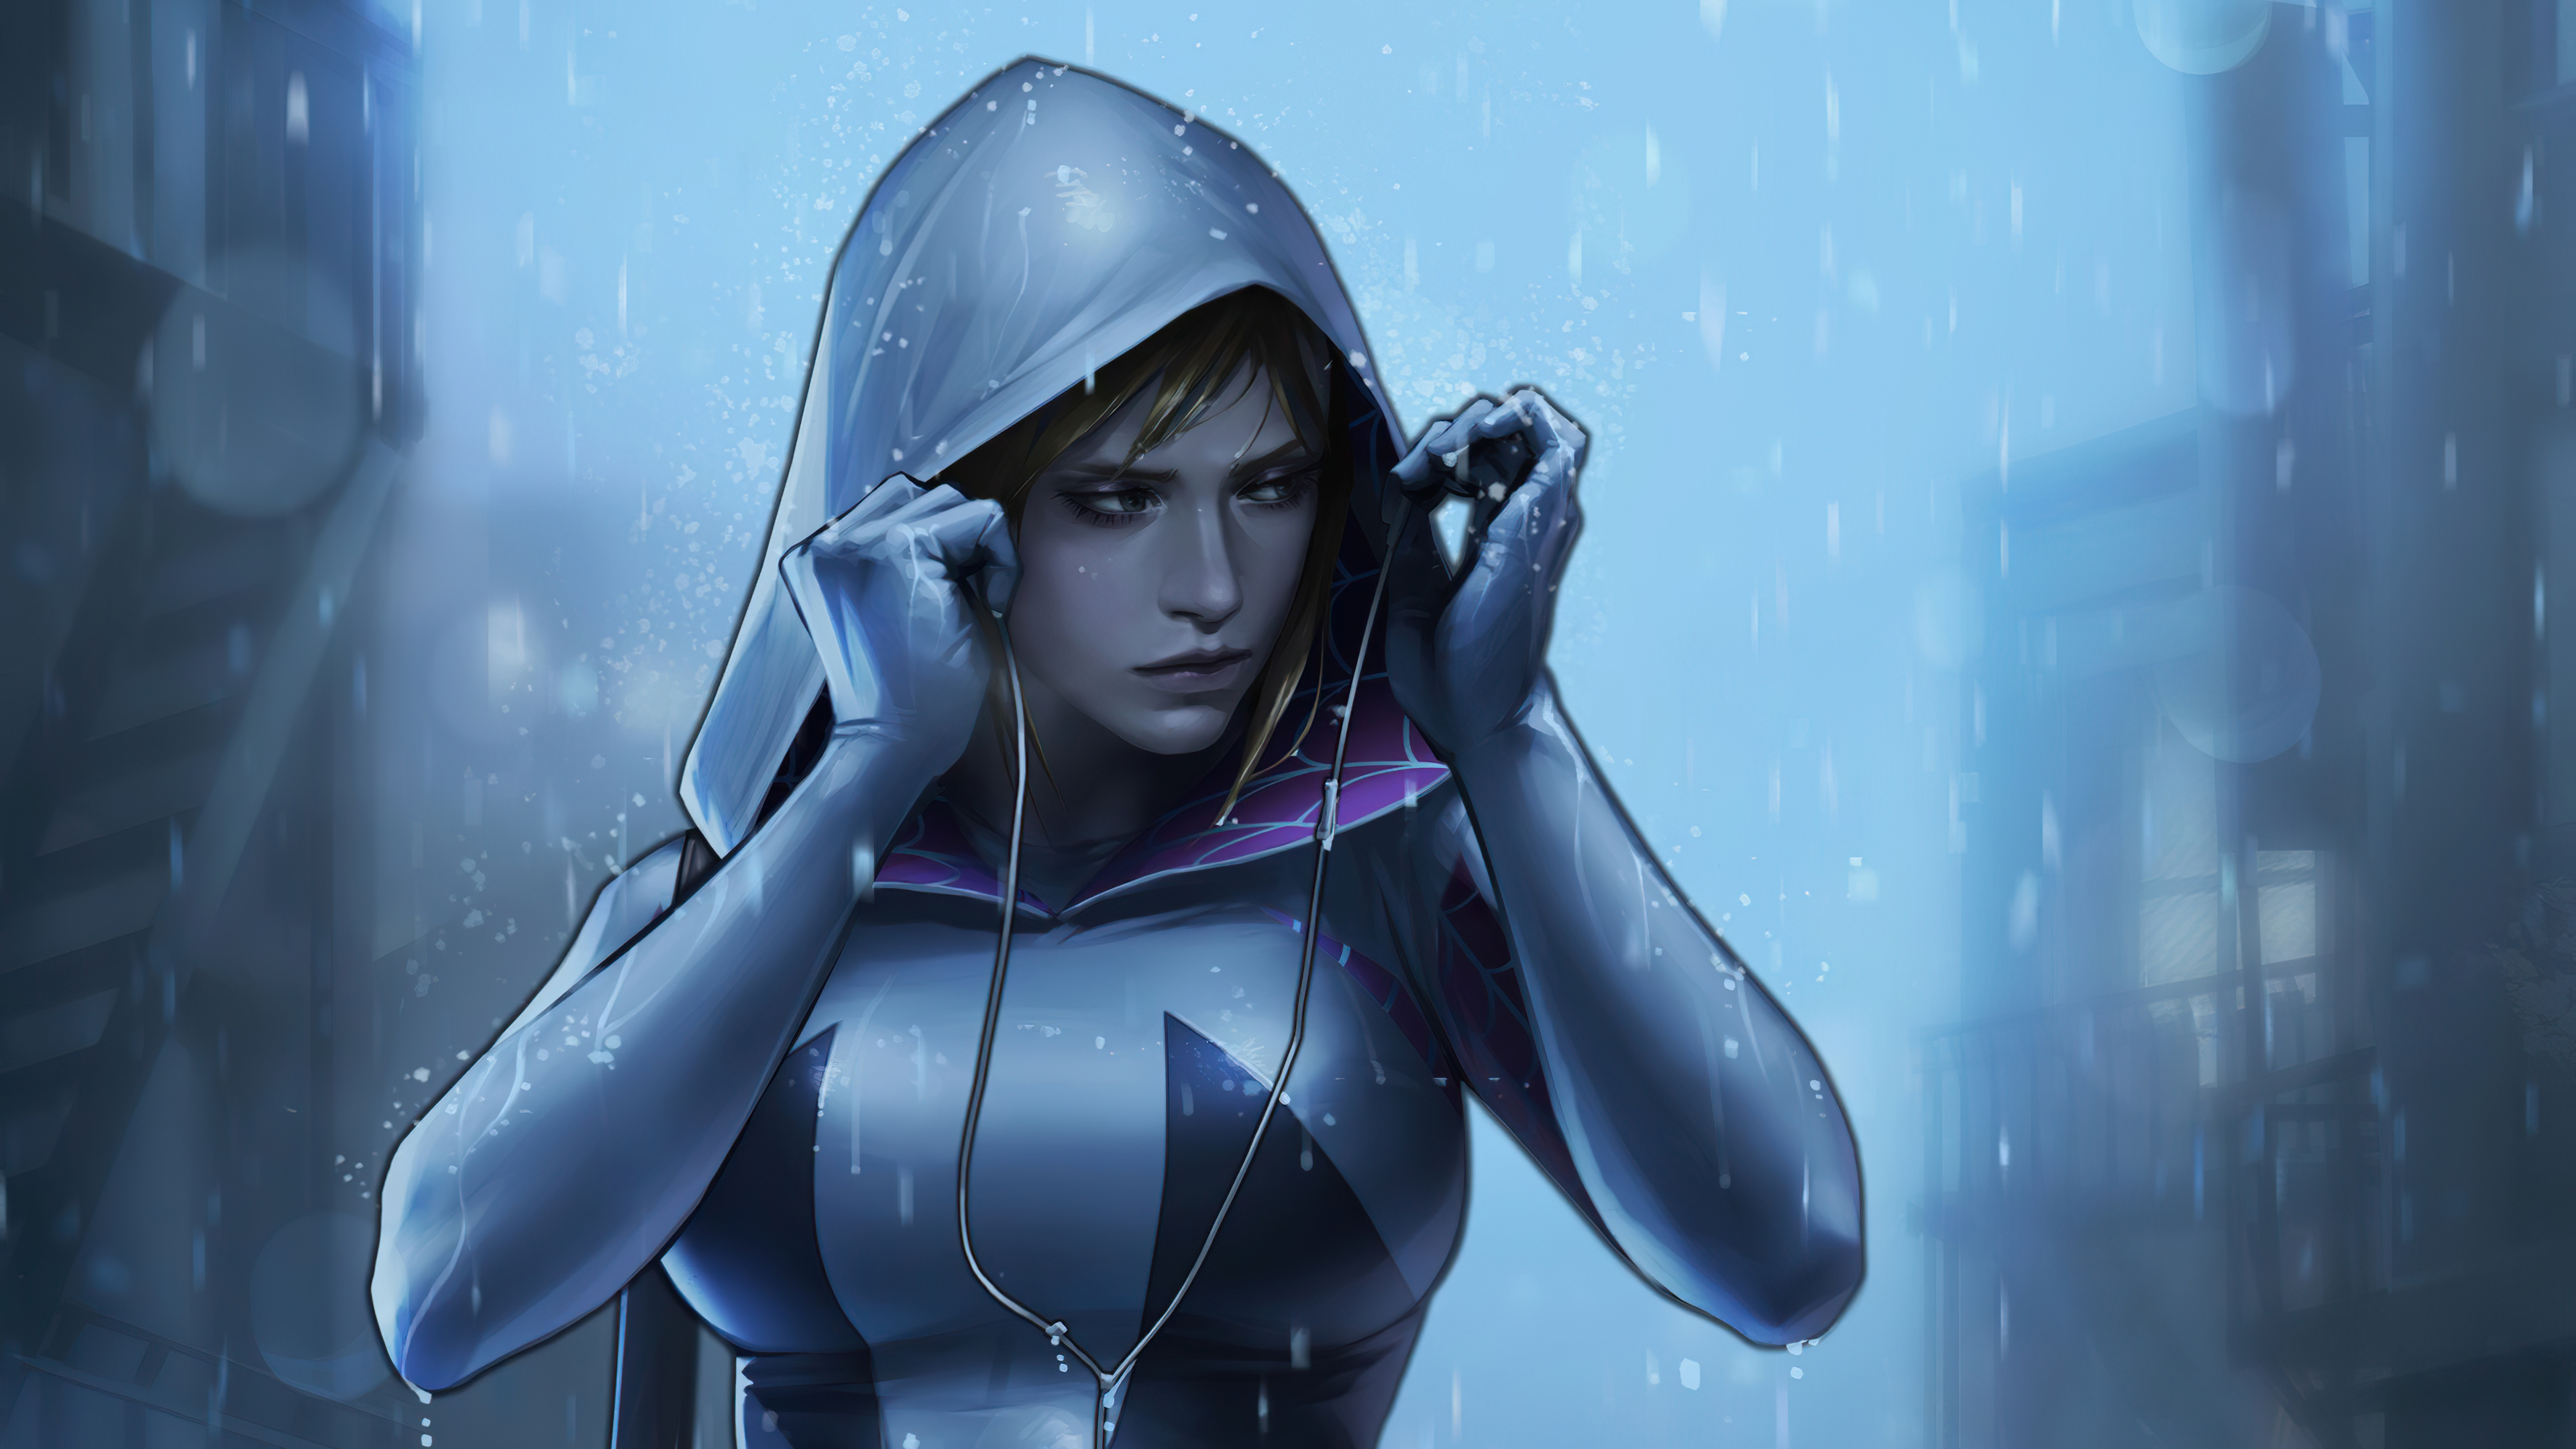 Spider-Gwen in the rain with music